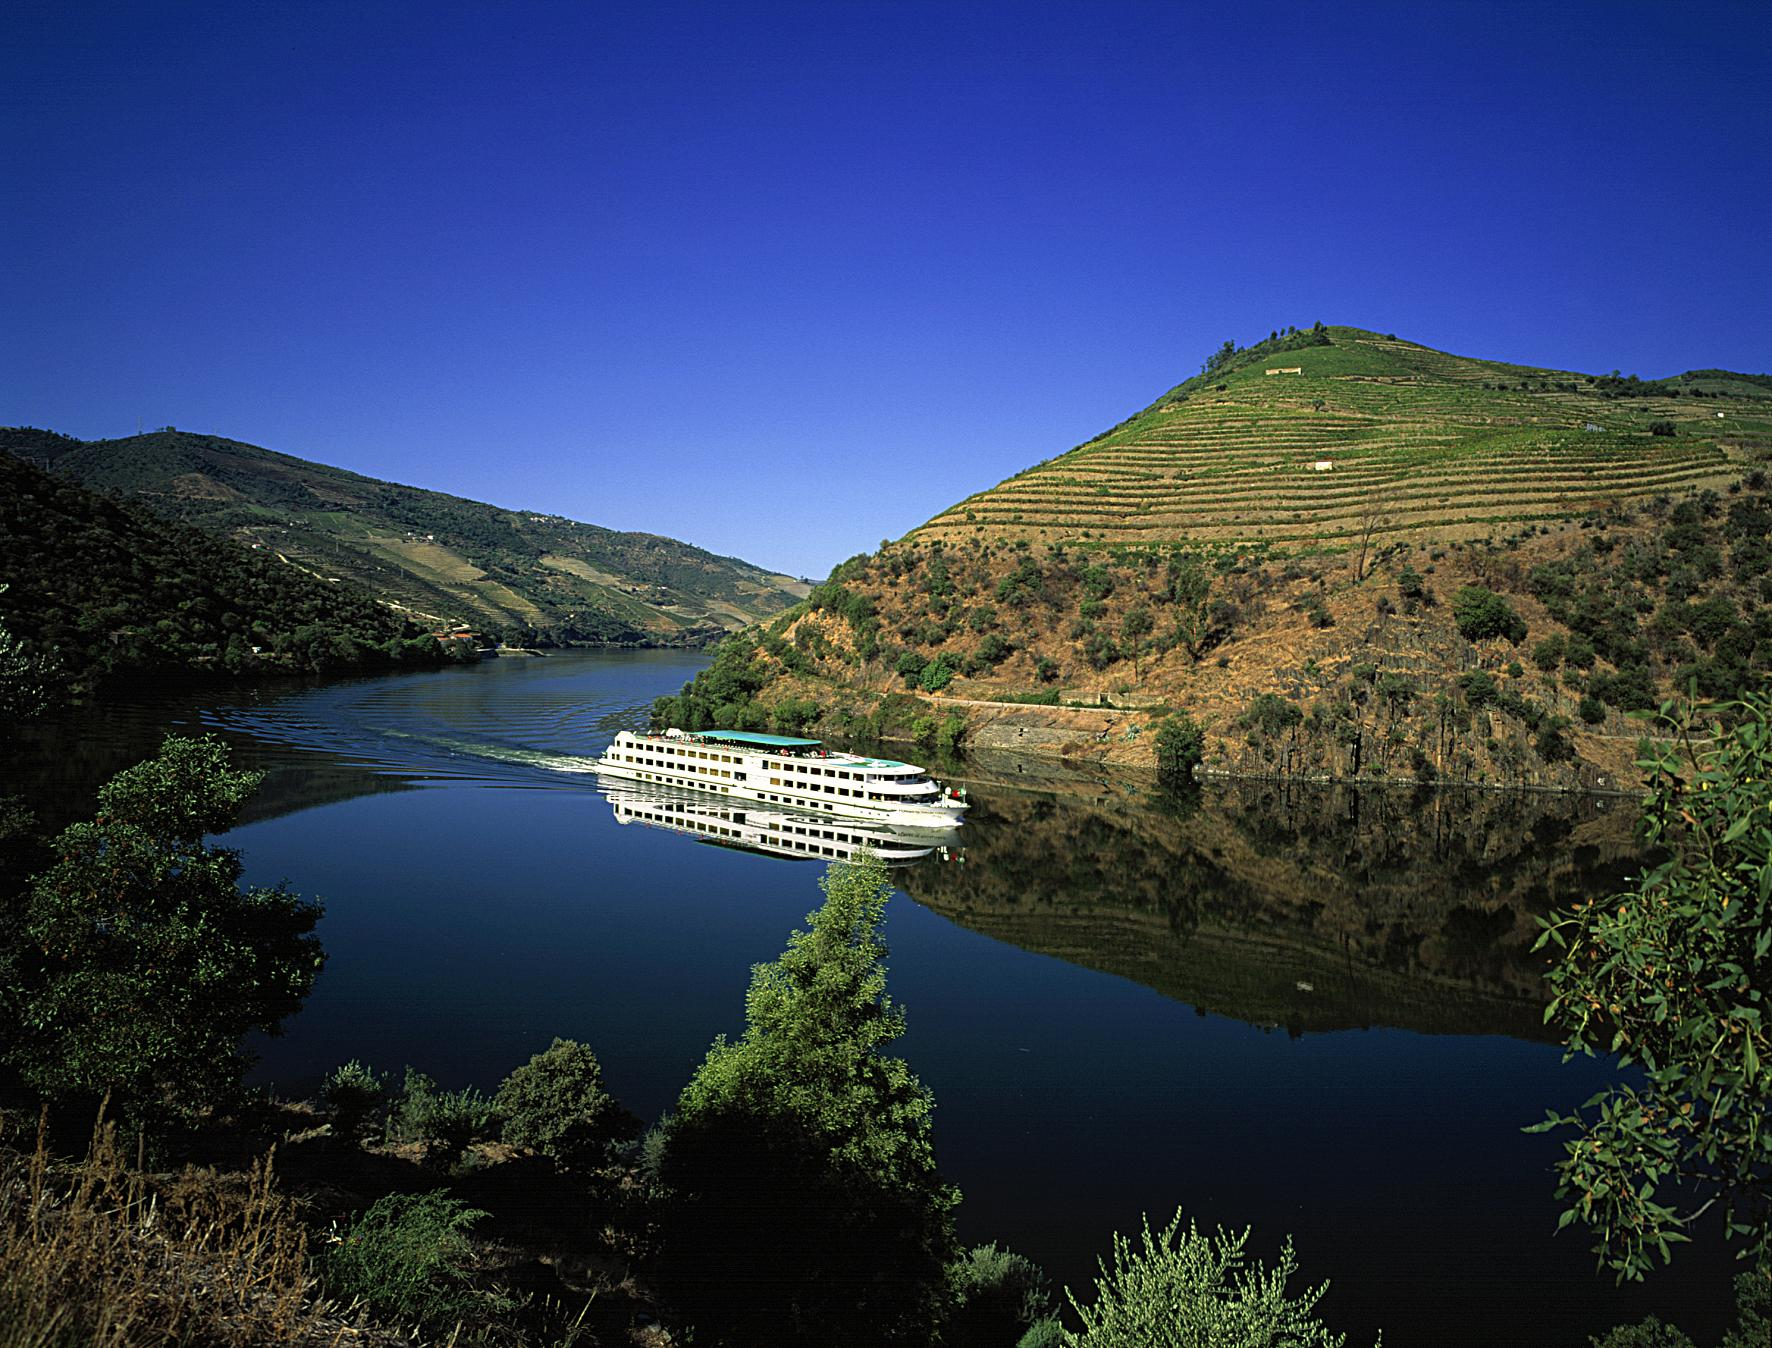 Cruise-on-Douro-River-LR-Photo-credit-to-Jose-Manuel